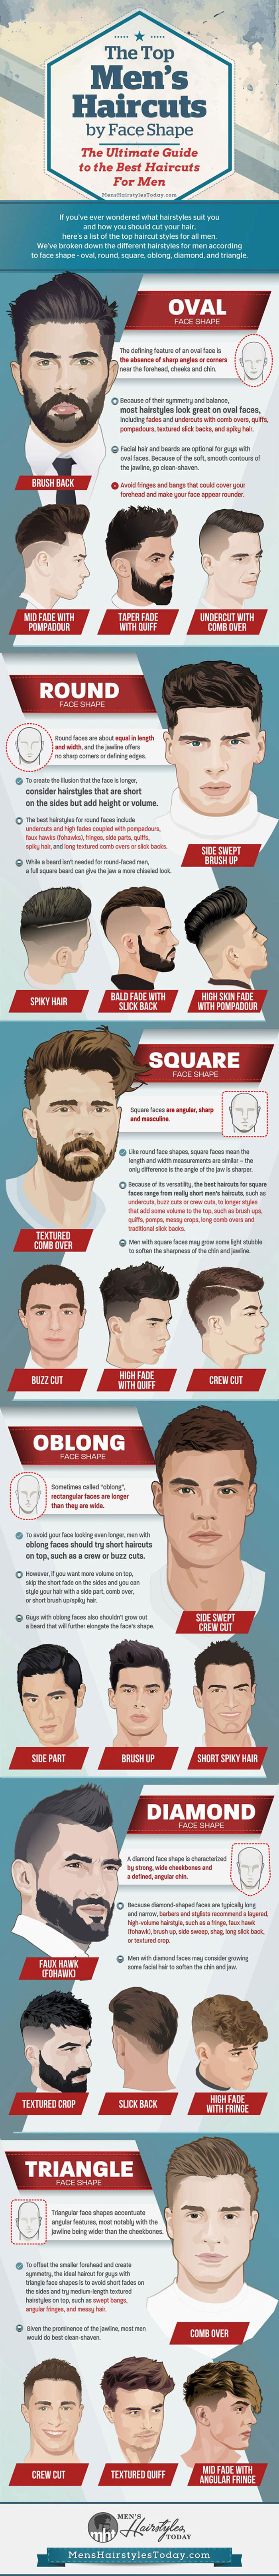 MHT Hairstyles By Face Shape Graphic